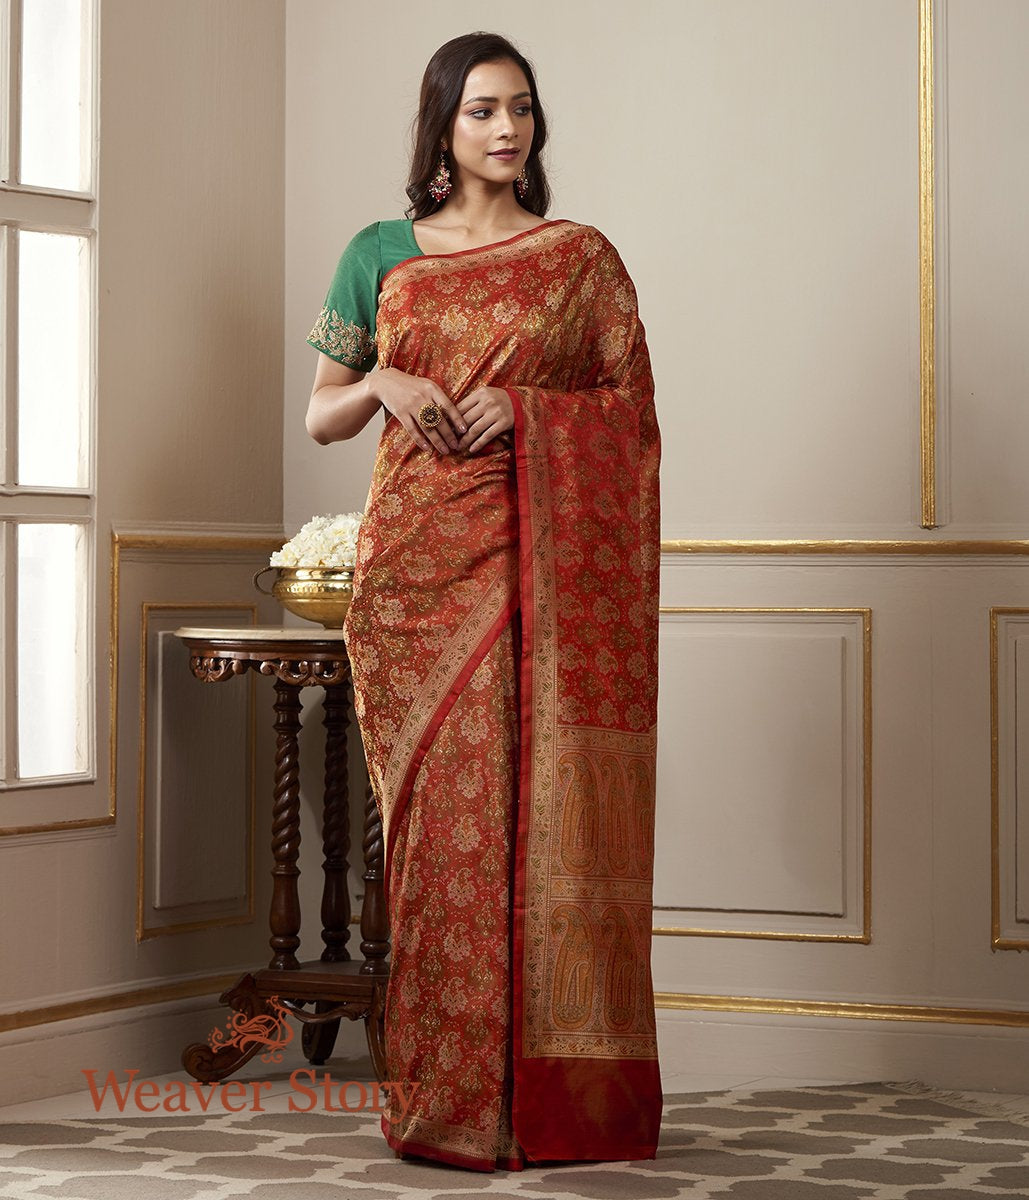 Handwoven Rust and Red Tanchoi Jamawar Saree with Woven Paisleys